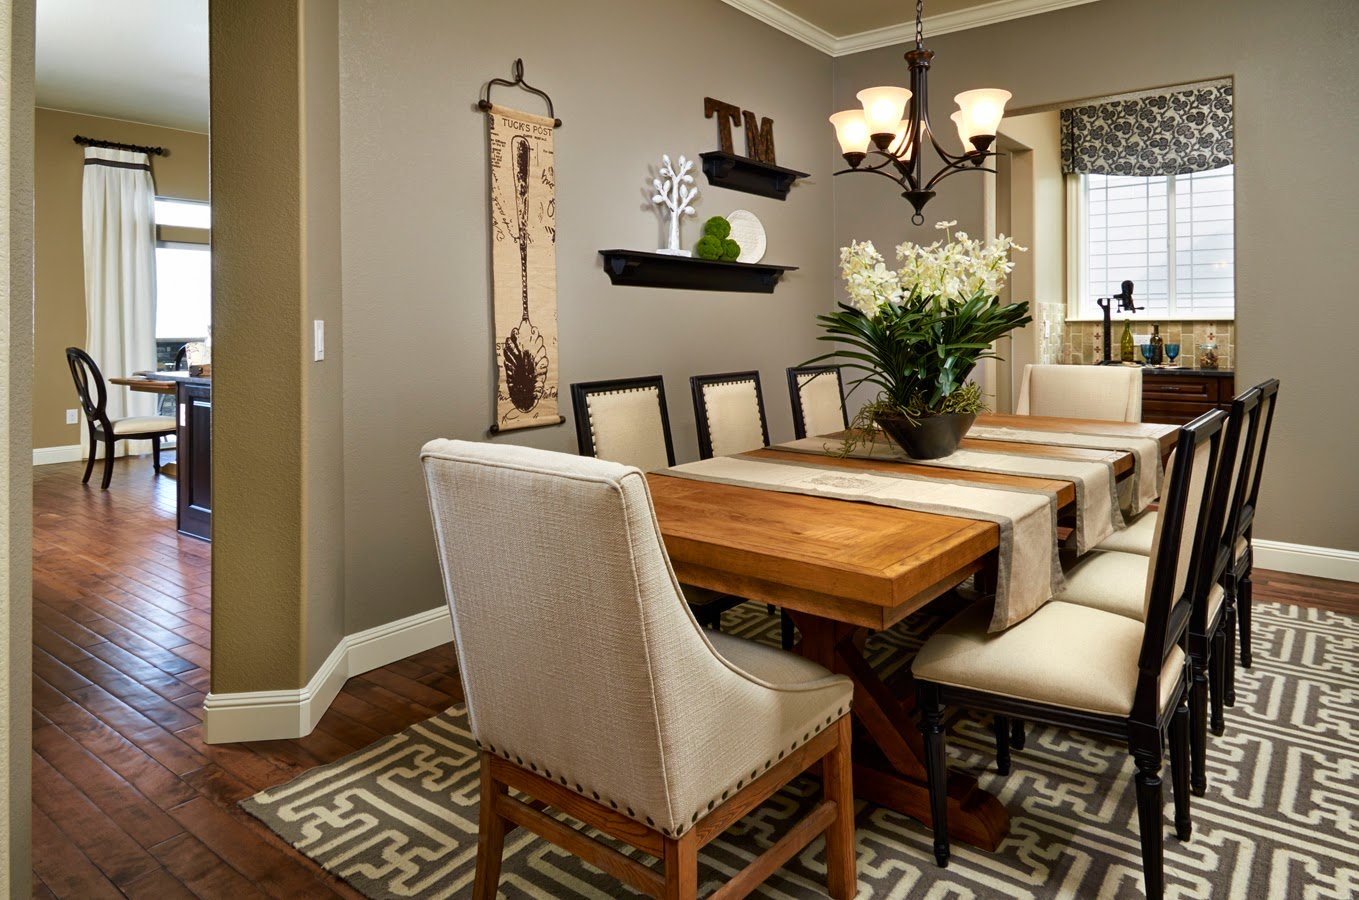 Dining room furniture arrangement ideas and tips kukun for Decor dining room table centerpiece